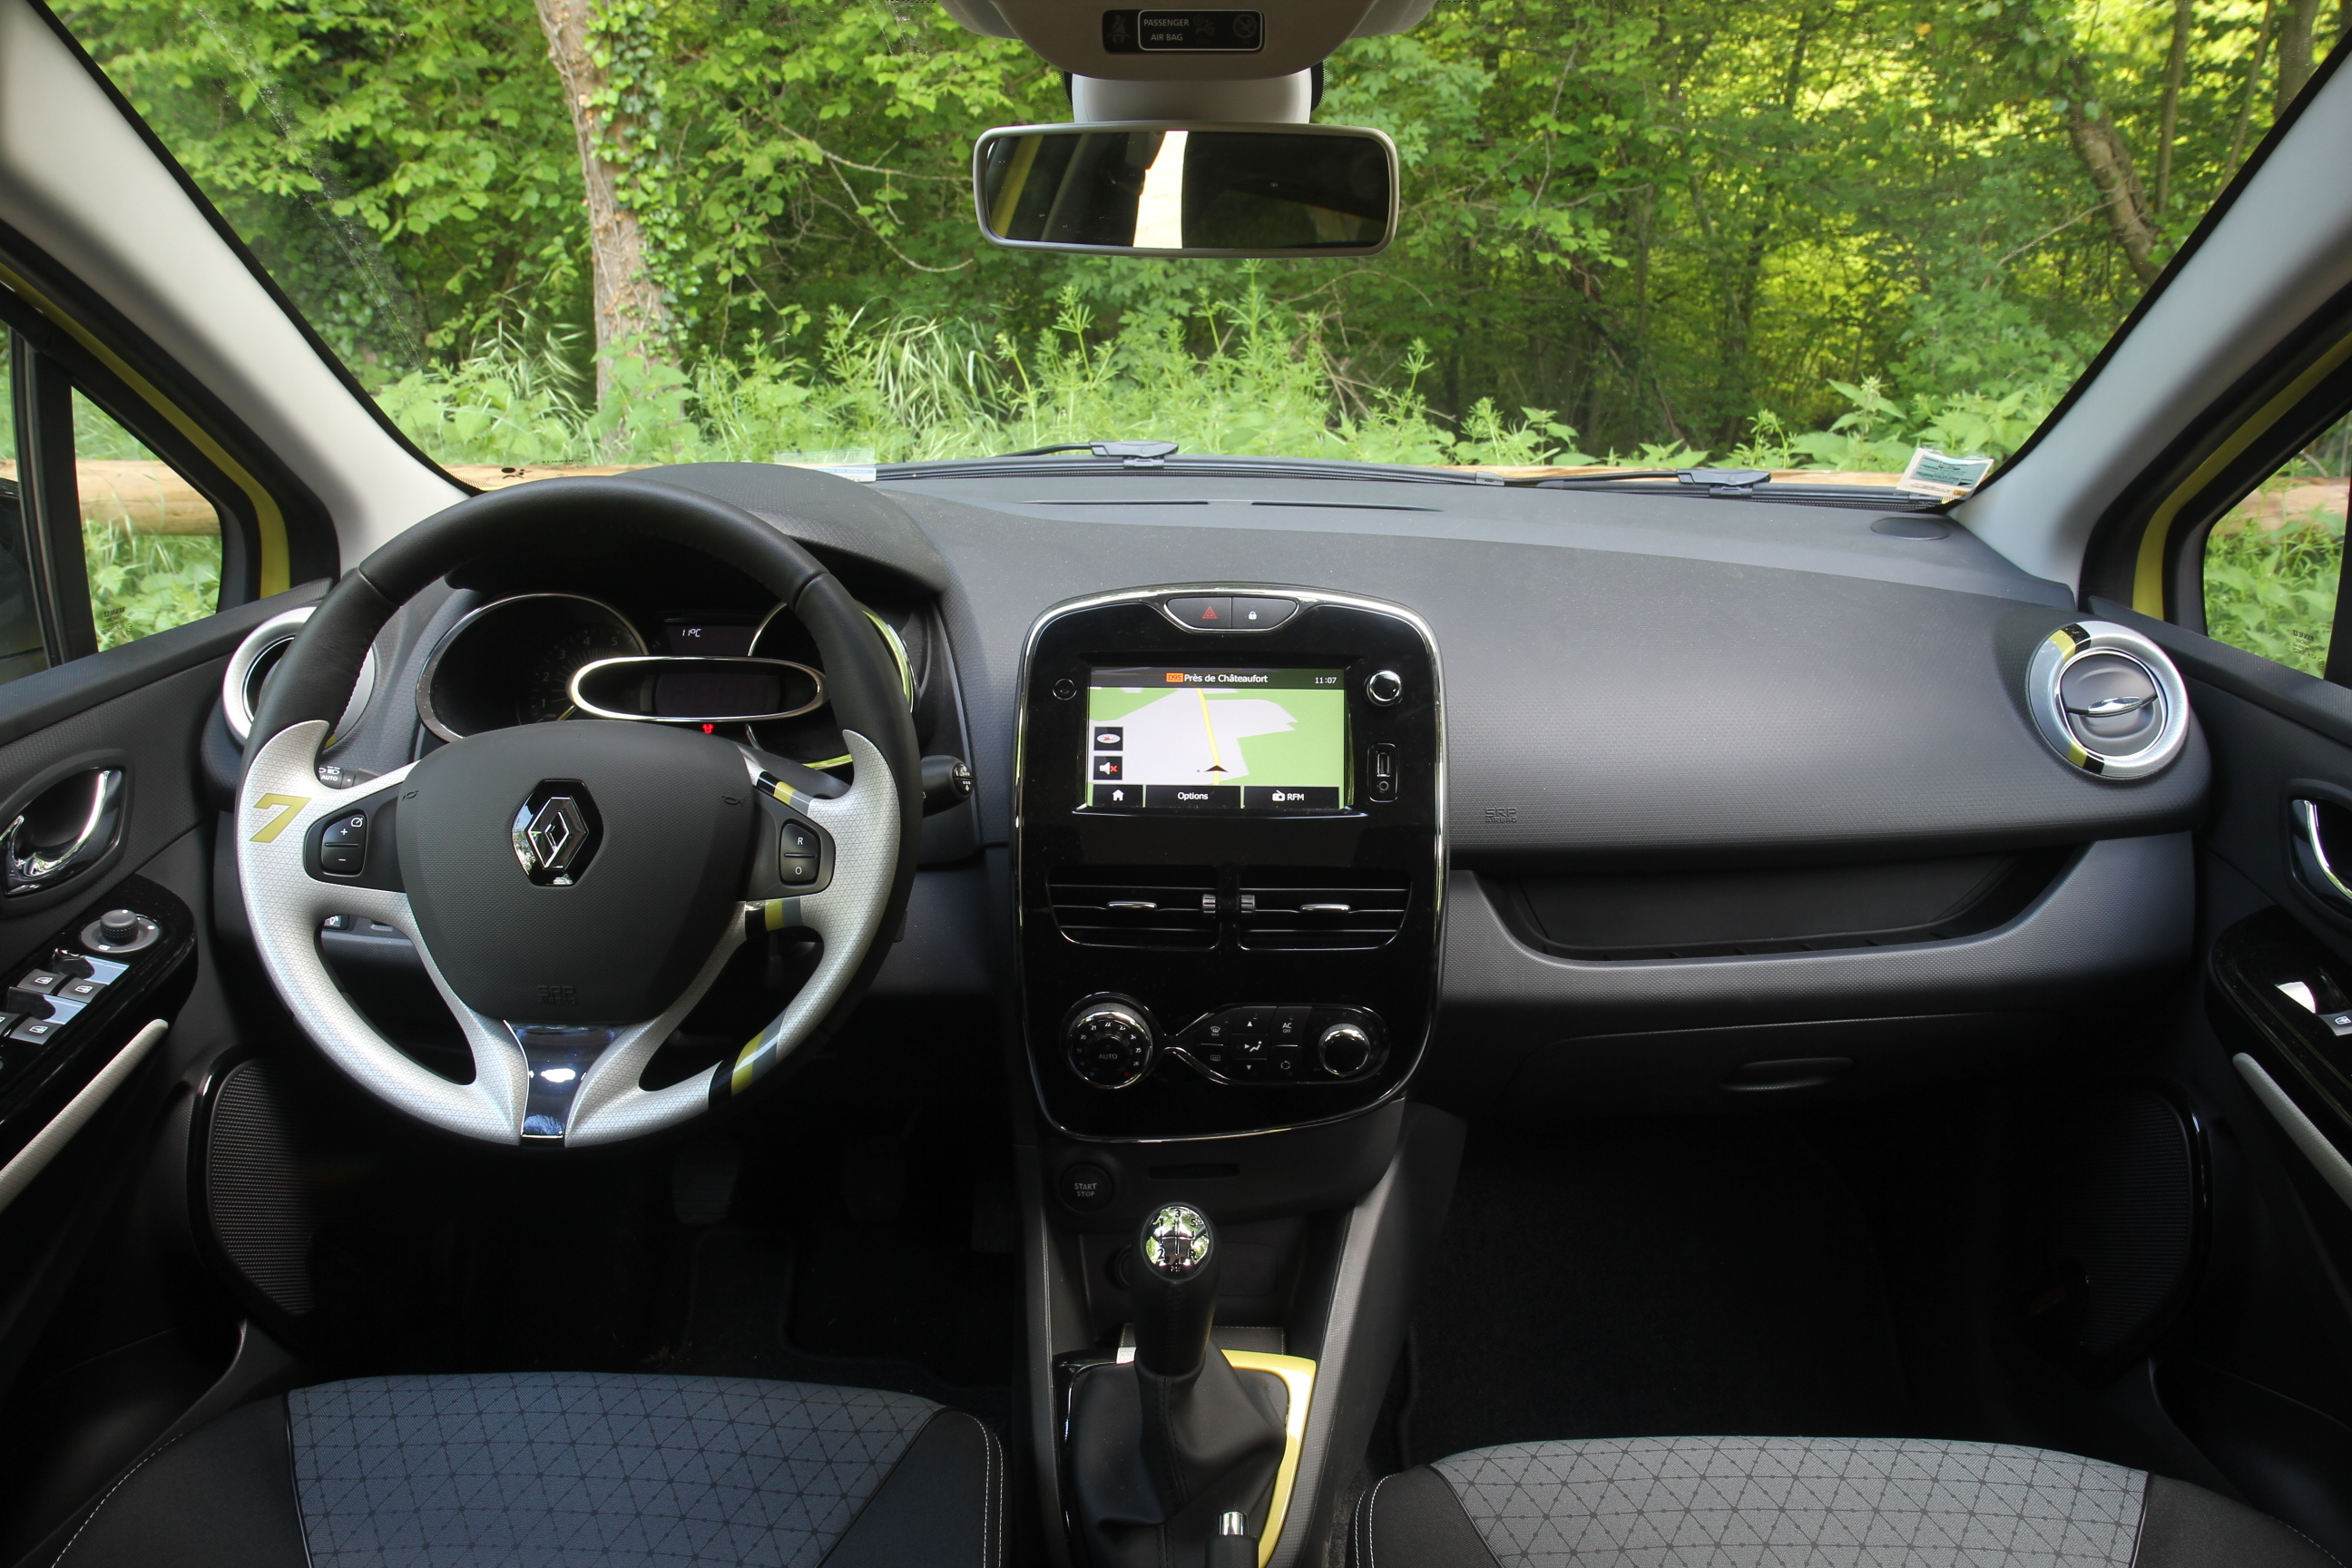 Essai vid o renault clio 4 estate pratique et esth tique for Verification interieur exterieur clio 4